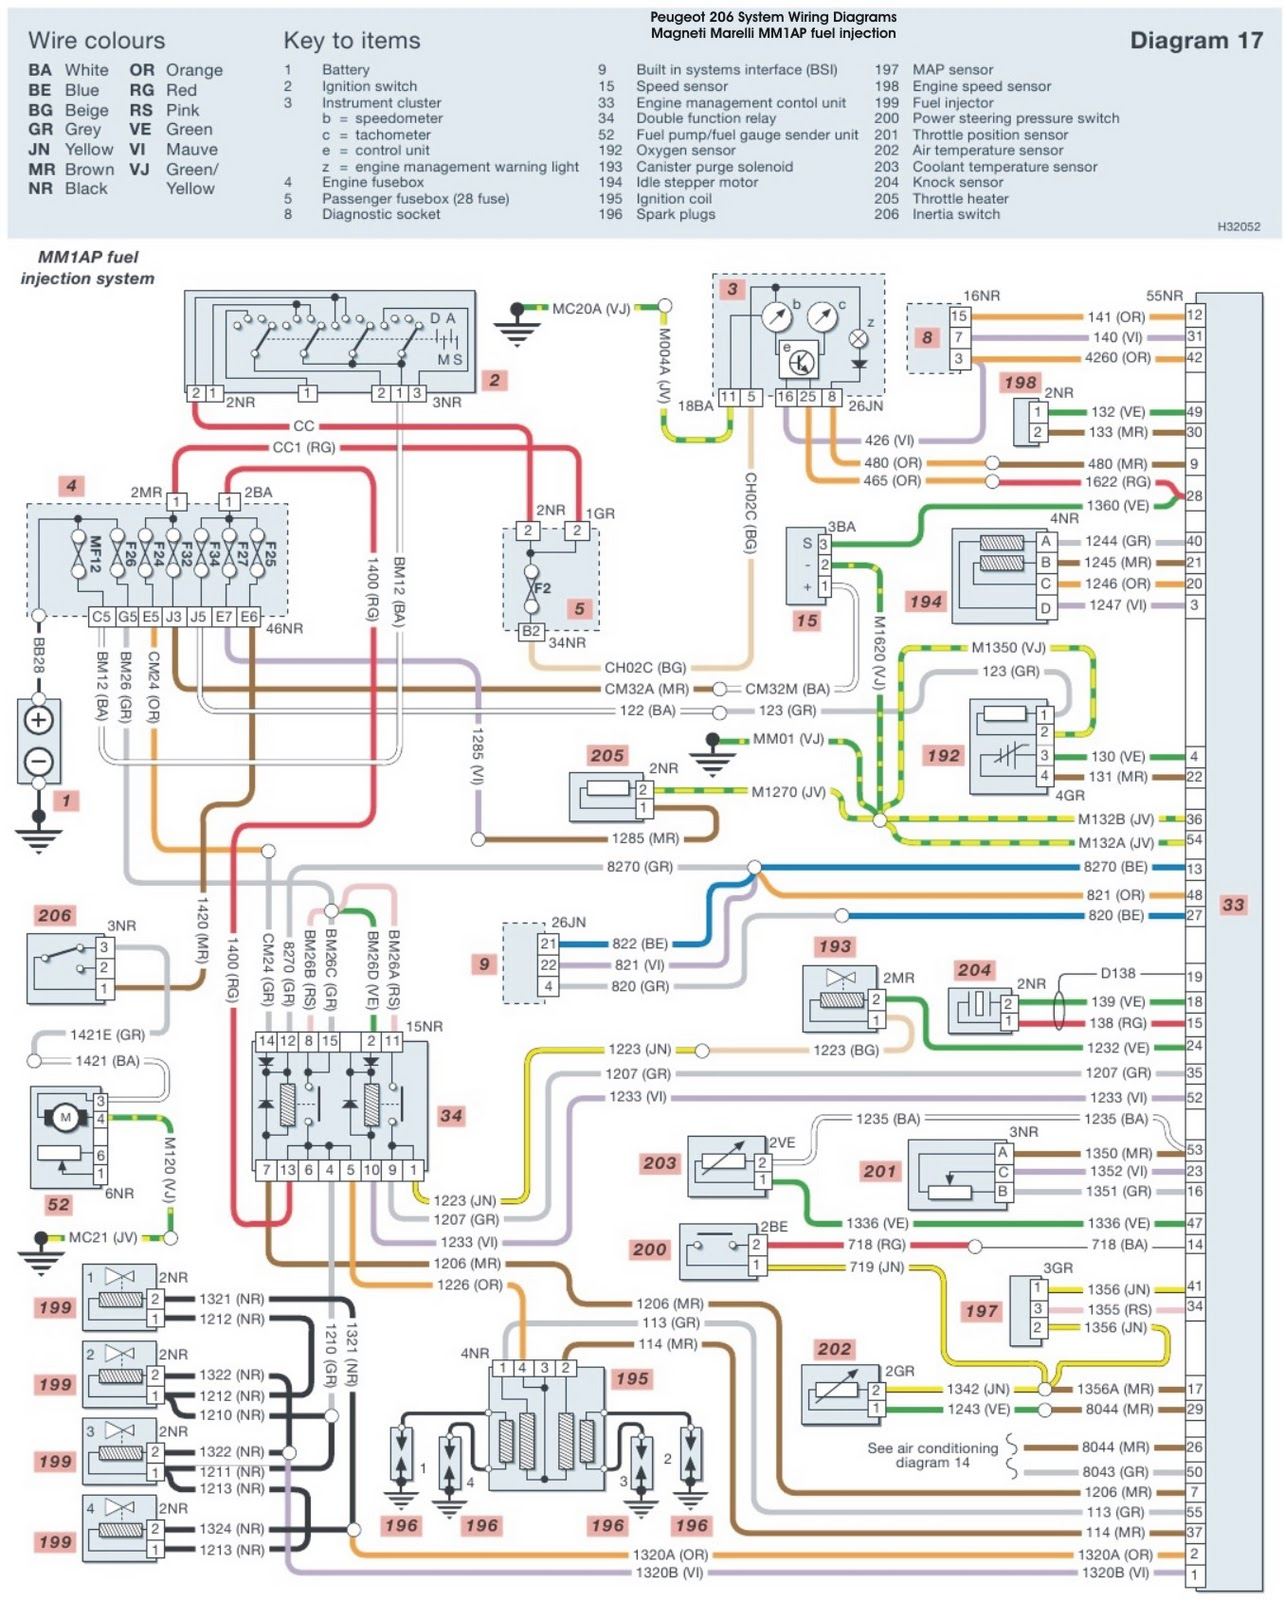 peugeot 206 fuel injection system wiring diagrams ignition coil wiring diagram basic ignition switch wiring diagram [ 1284 x 1600 Pixel ]